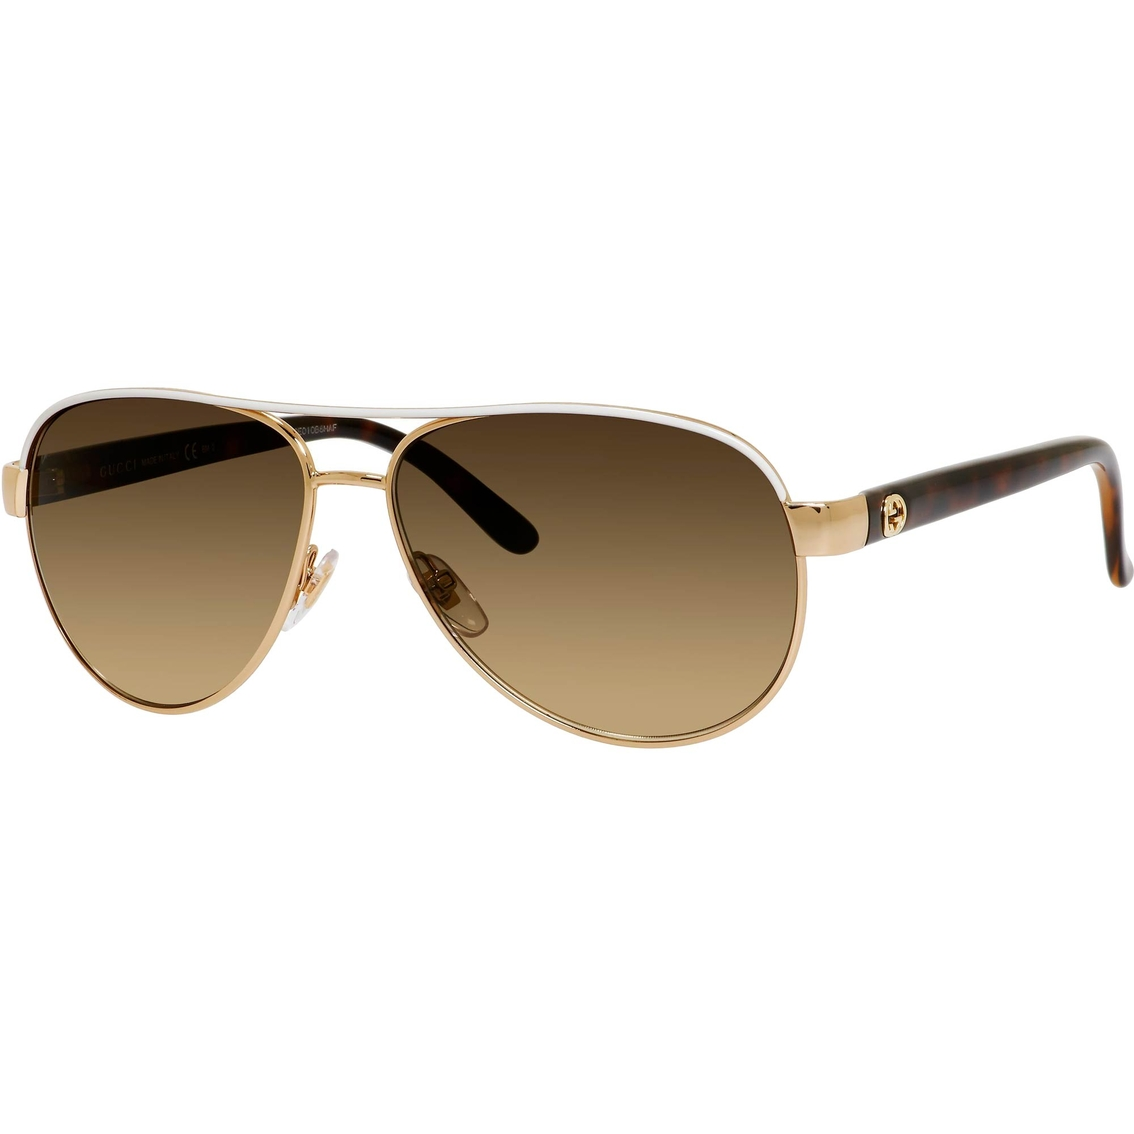 2ba7e2fe2b7 Gucci Small Aviator Sunglasses